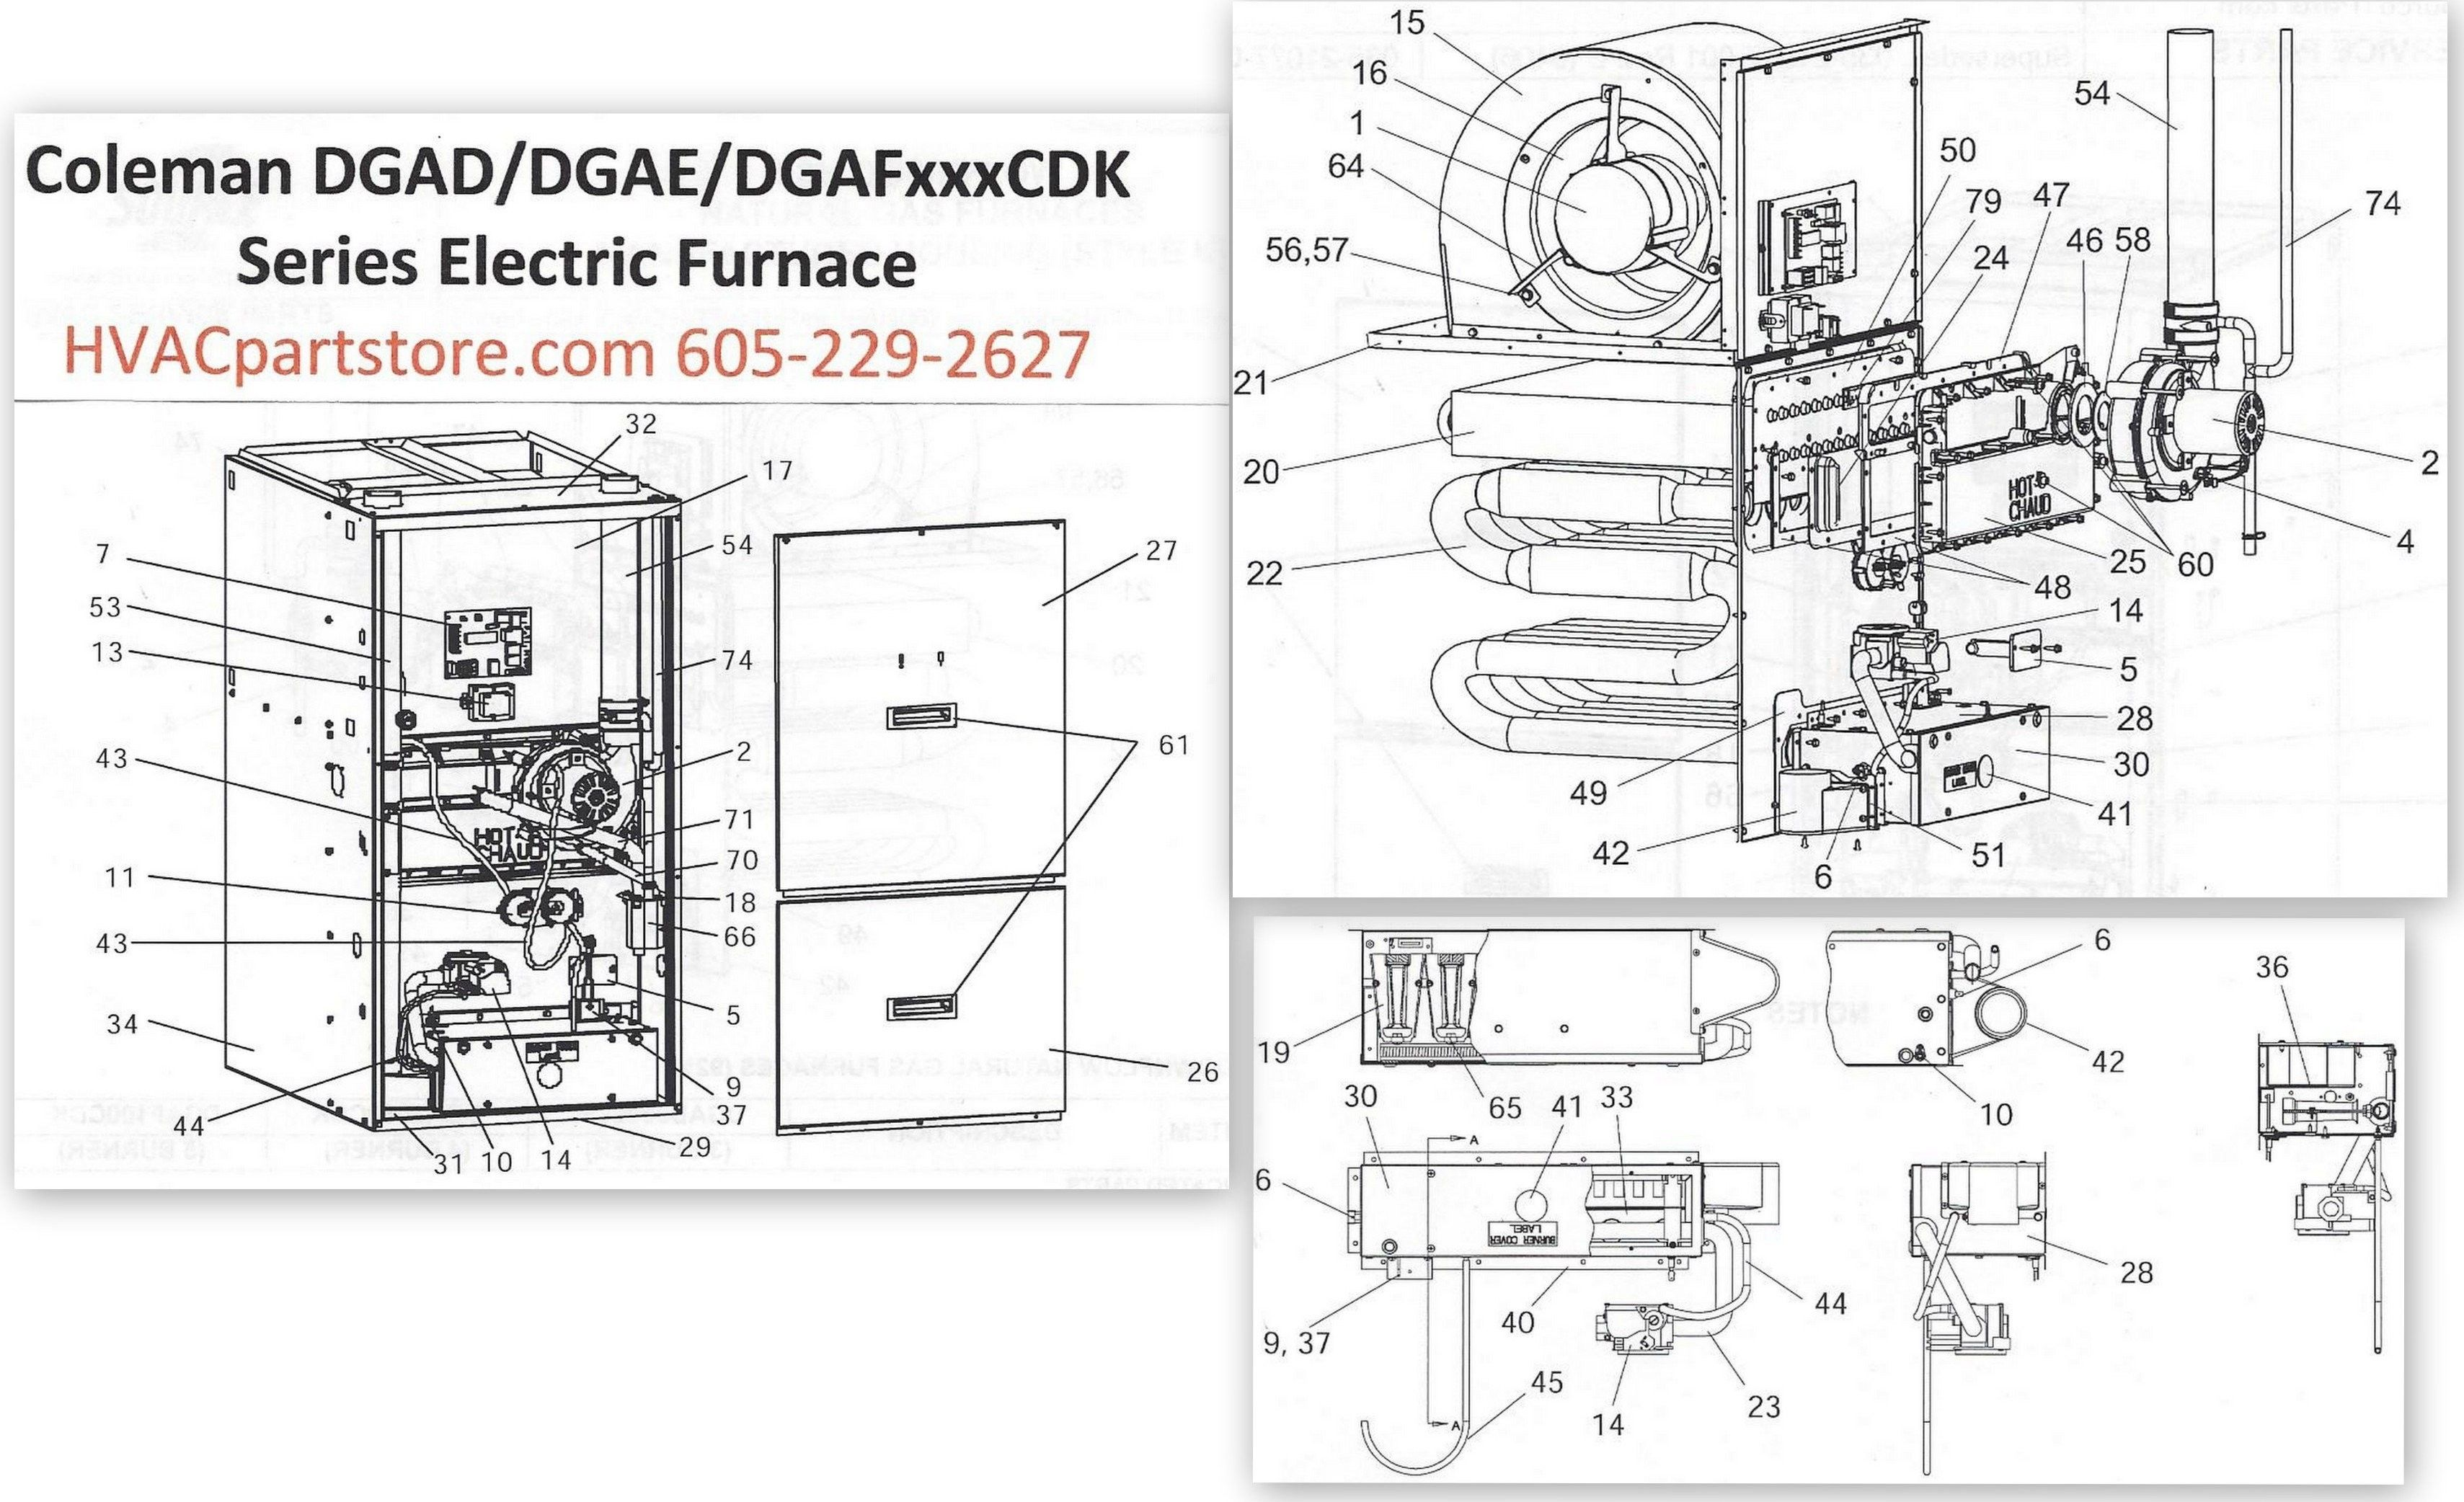 Unique Wiring Diagram For Goodman Gas Furnace Diagram Diagramsample Diagramtemplate Wiringdiagram Diagramchart Worksheet Electric Furnace Furnace Diagram